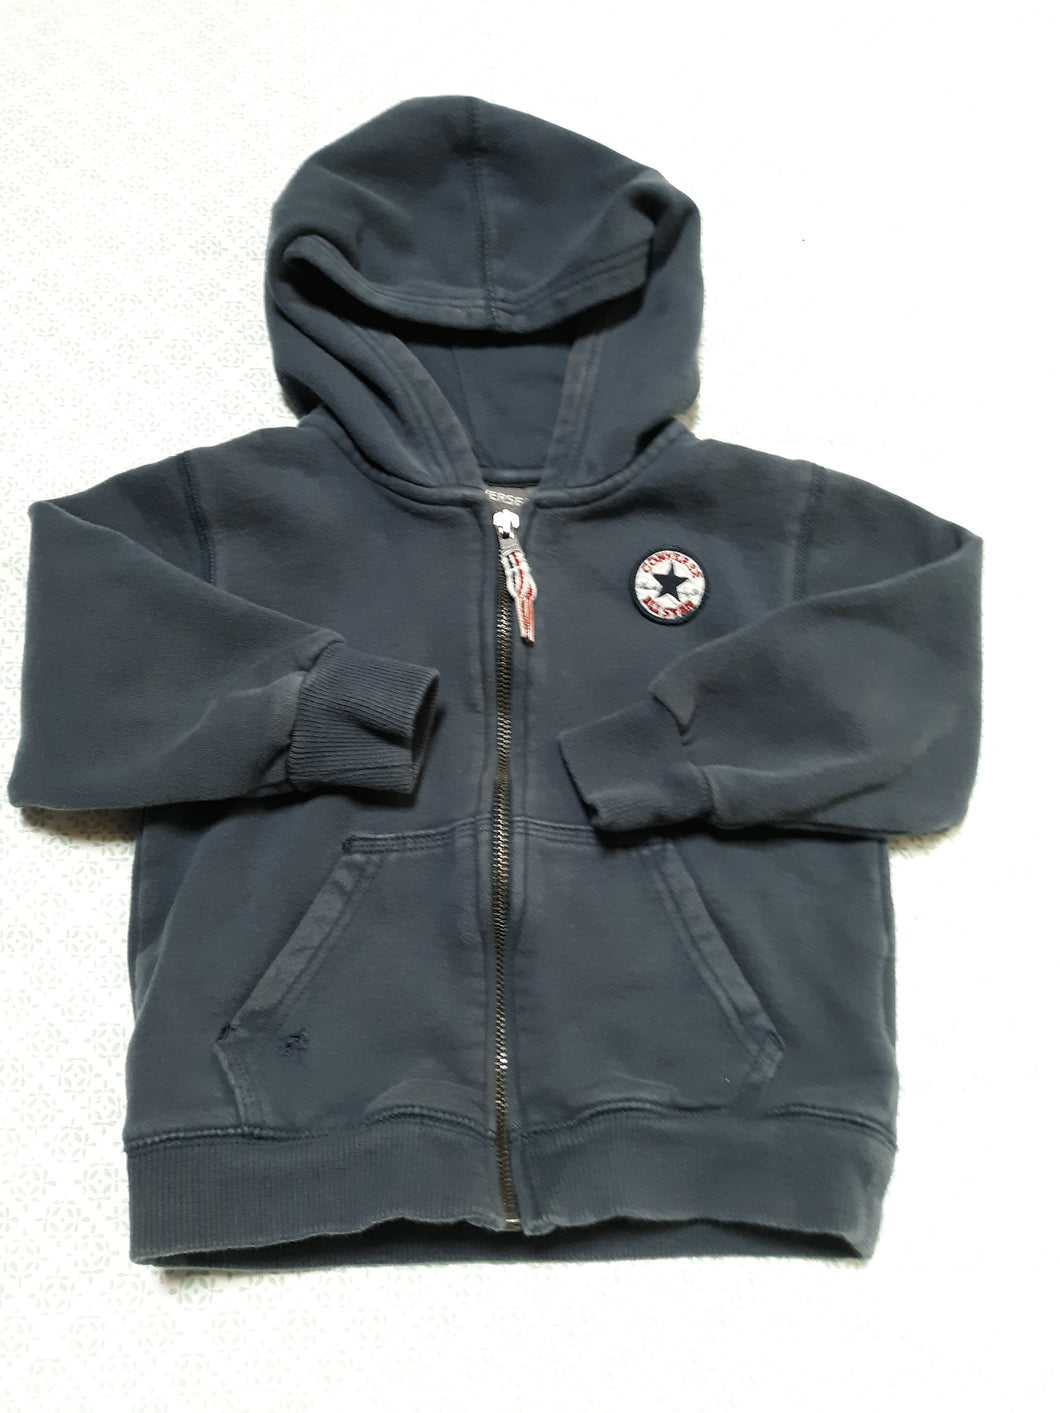 Childrens Boys Hoodie Converse Size 3T Long Sleeve